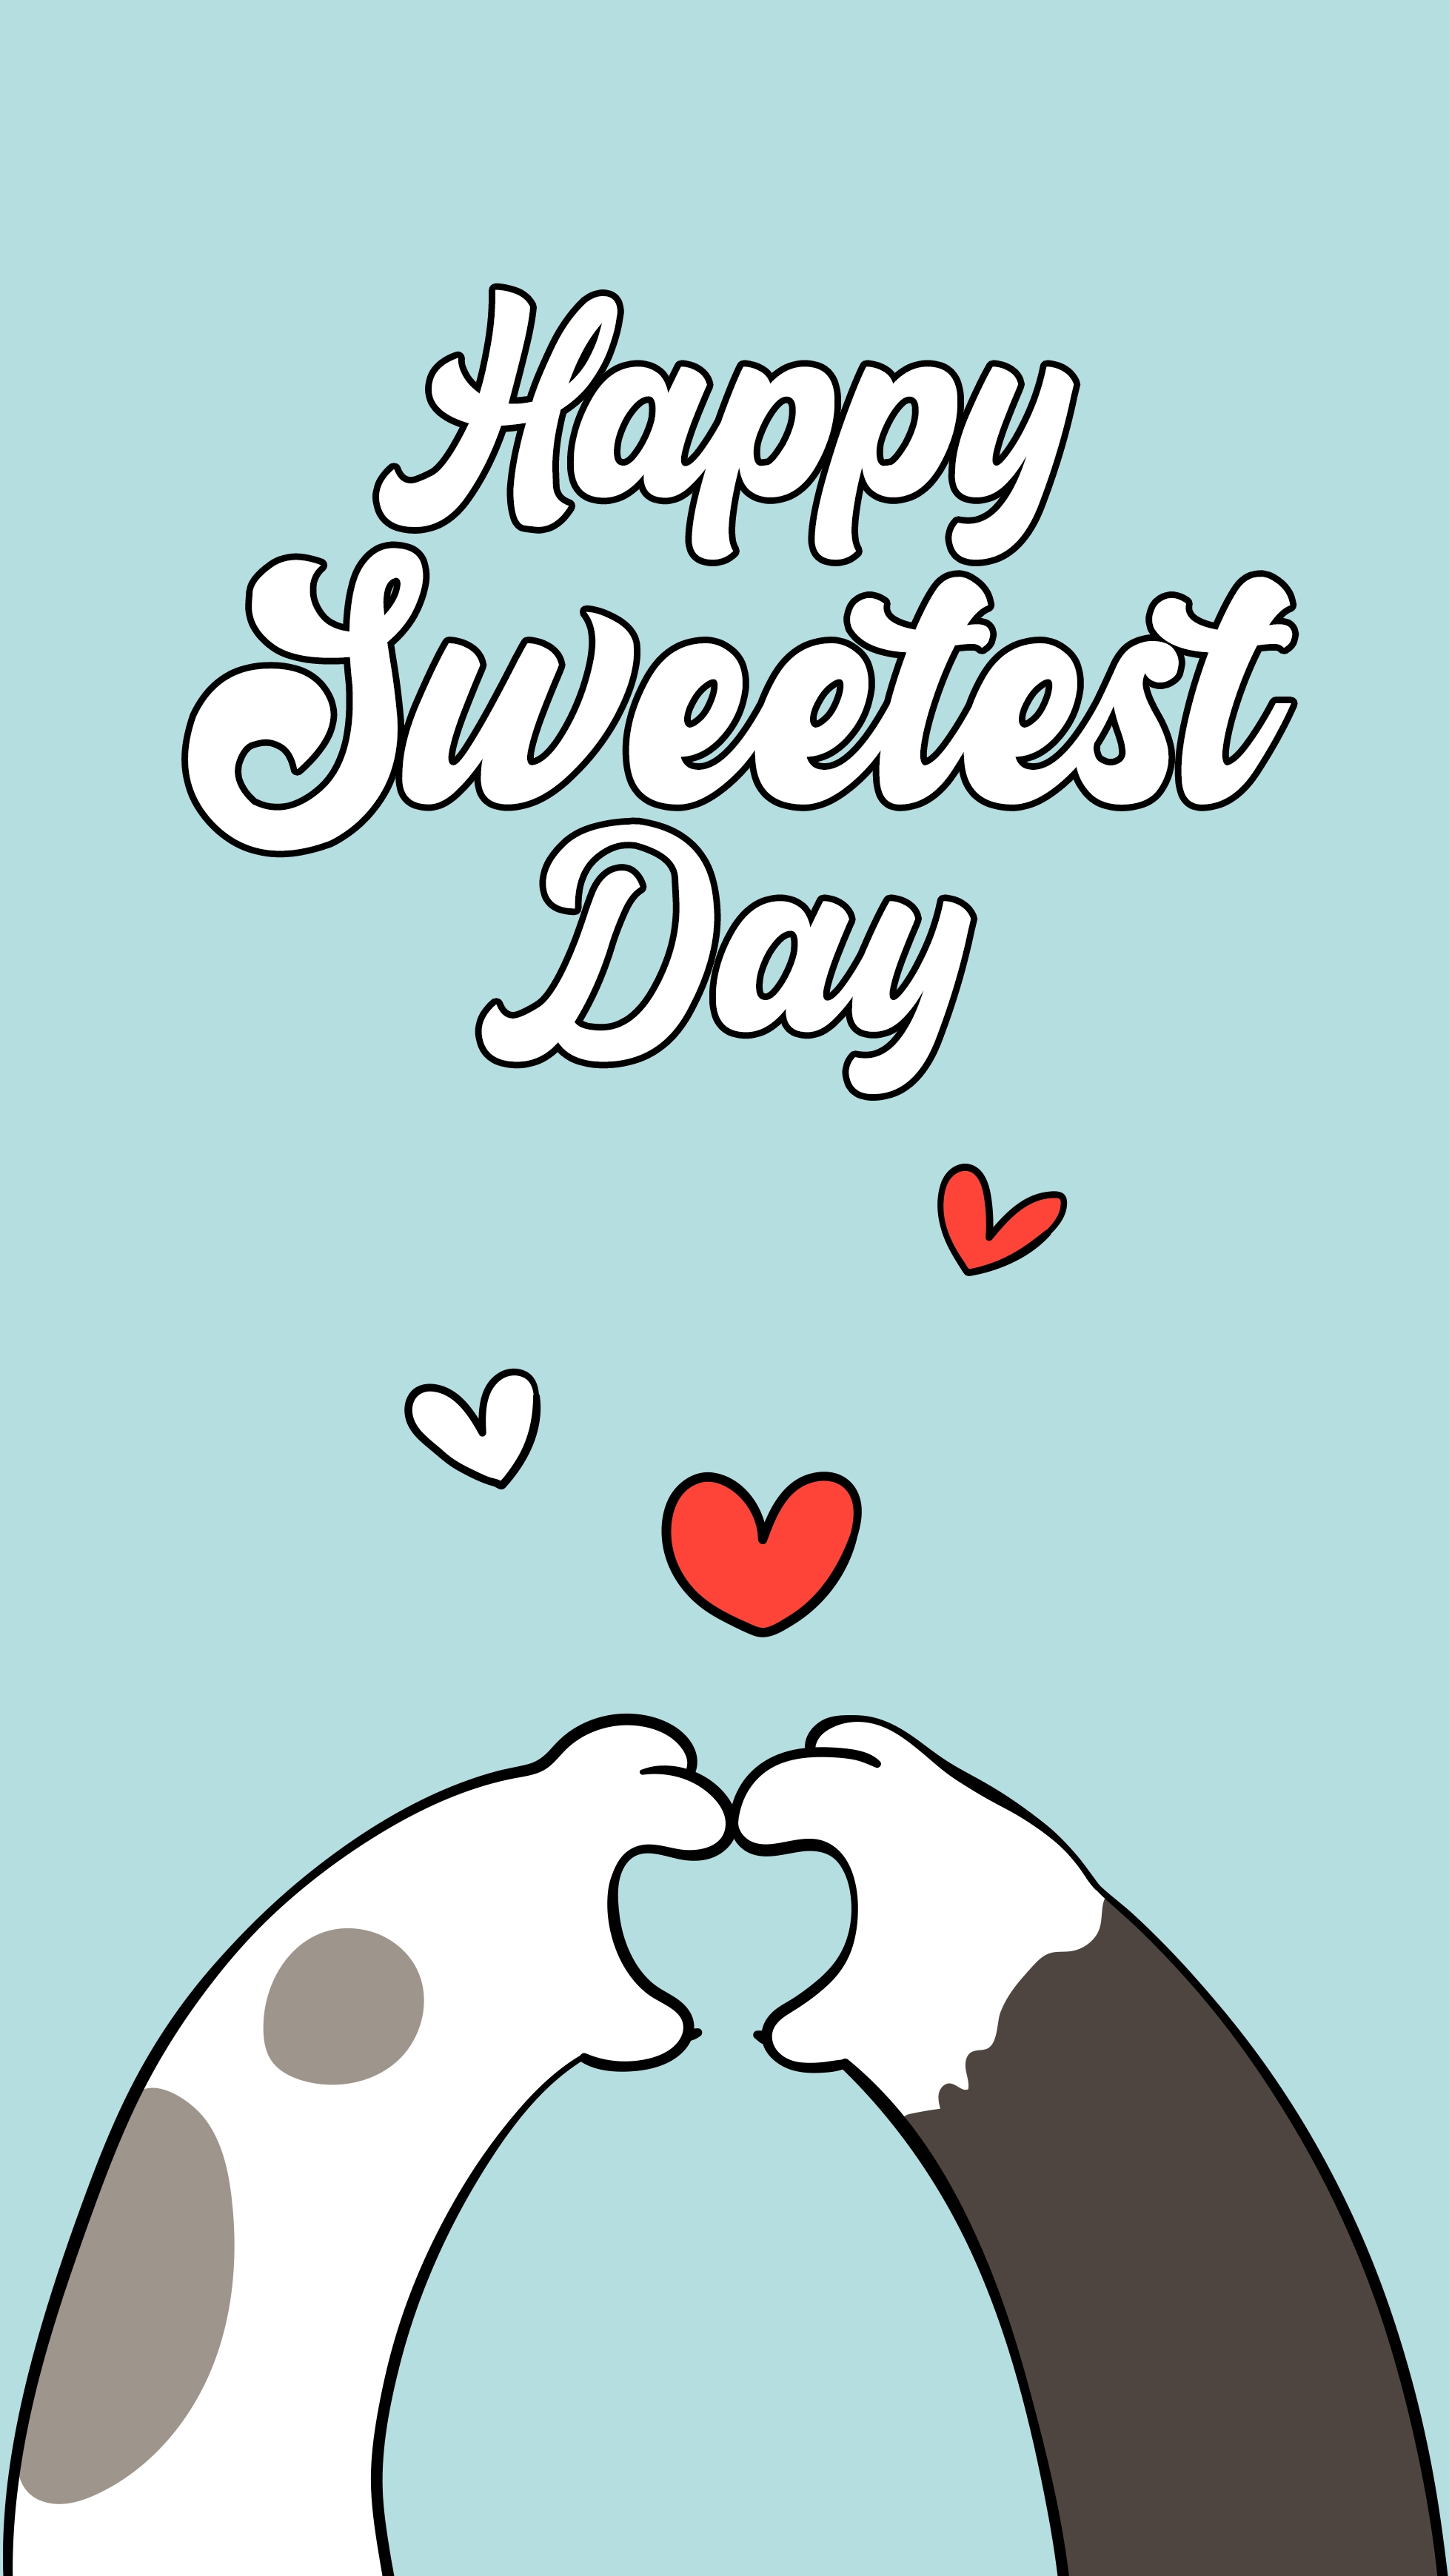 Sweetest Day 2